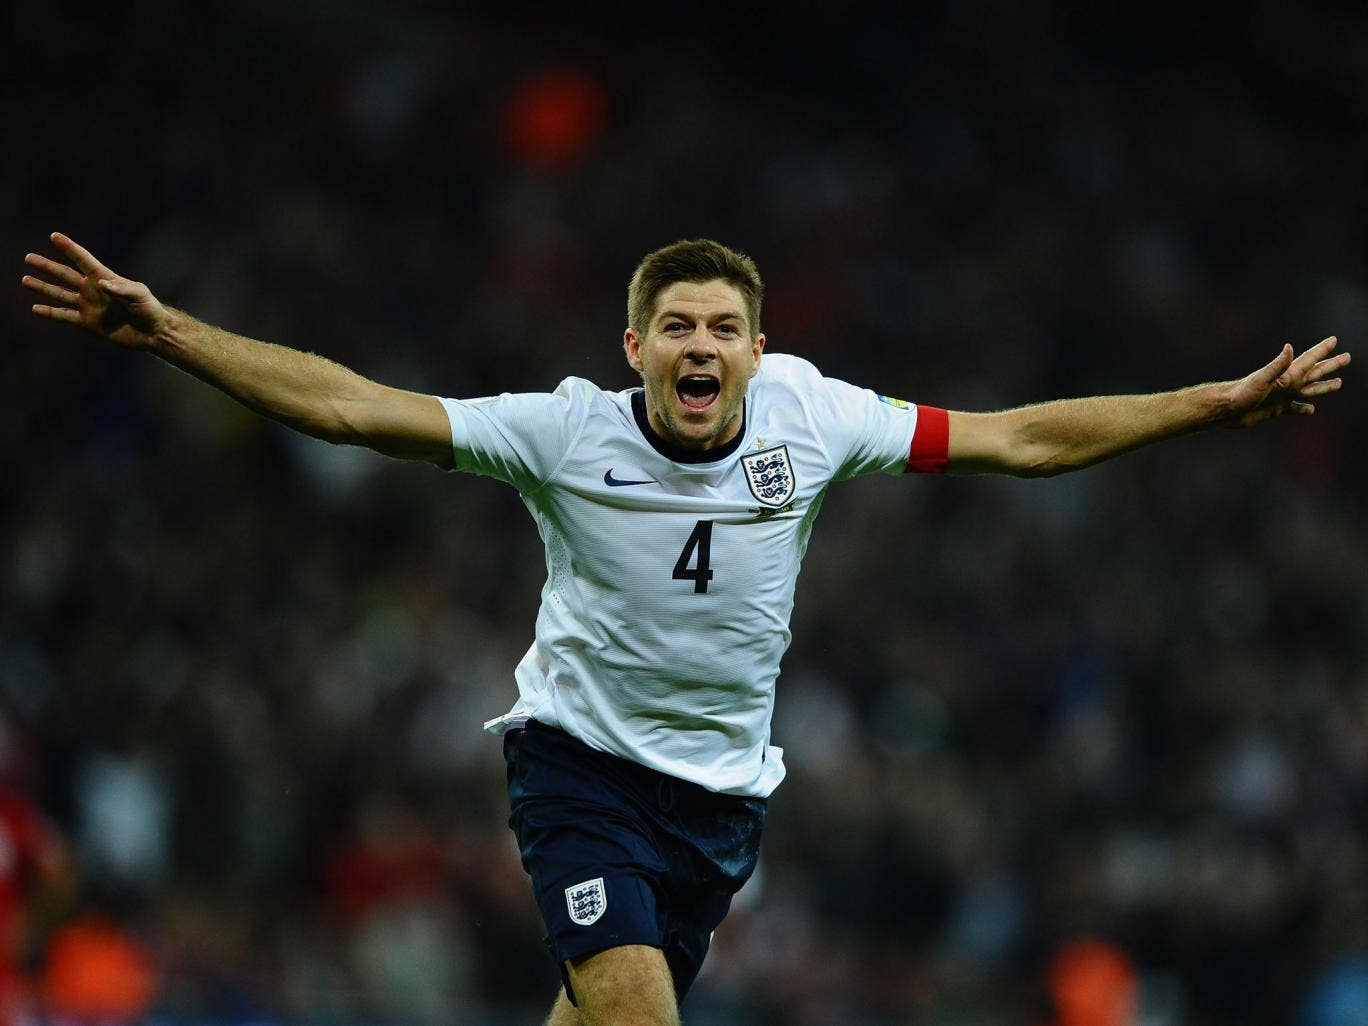 Liverpool manager Steven Gerrard has admitted that Steven Gerrard could retire from international football following England's 2014 World Cup campaign